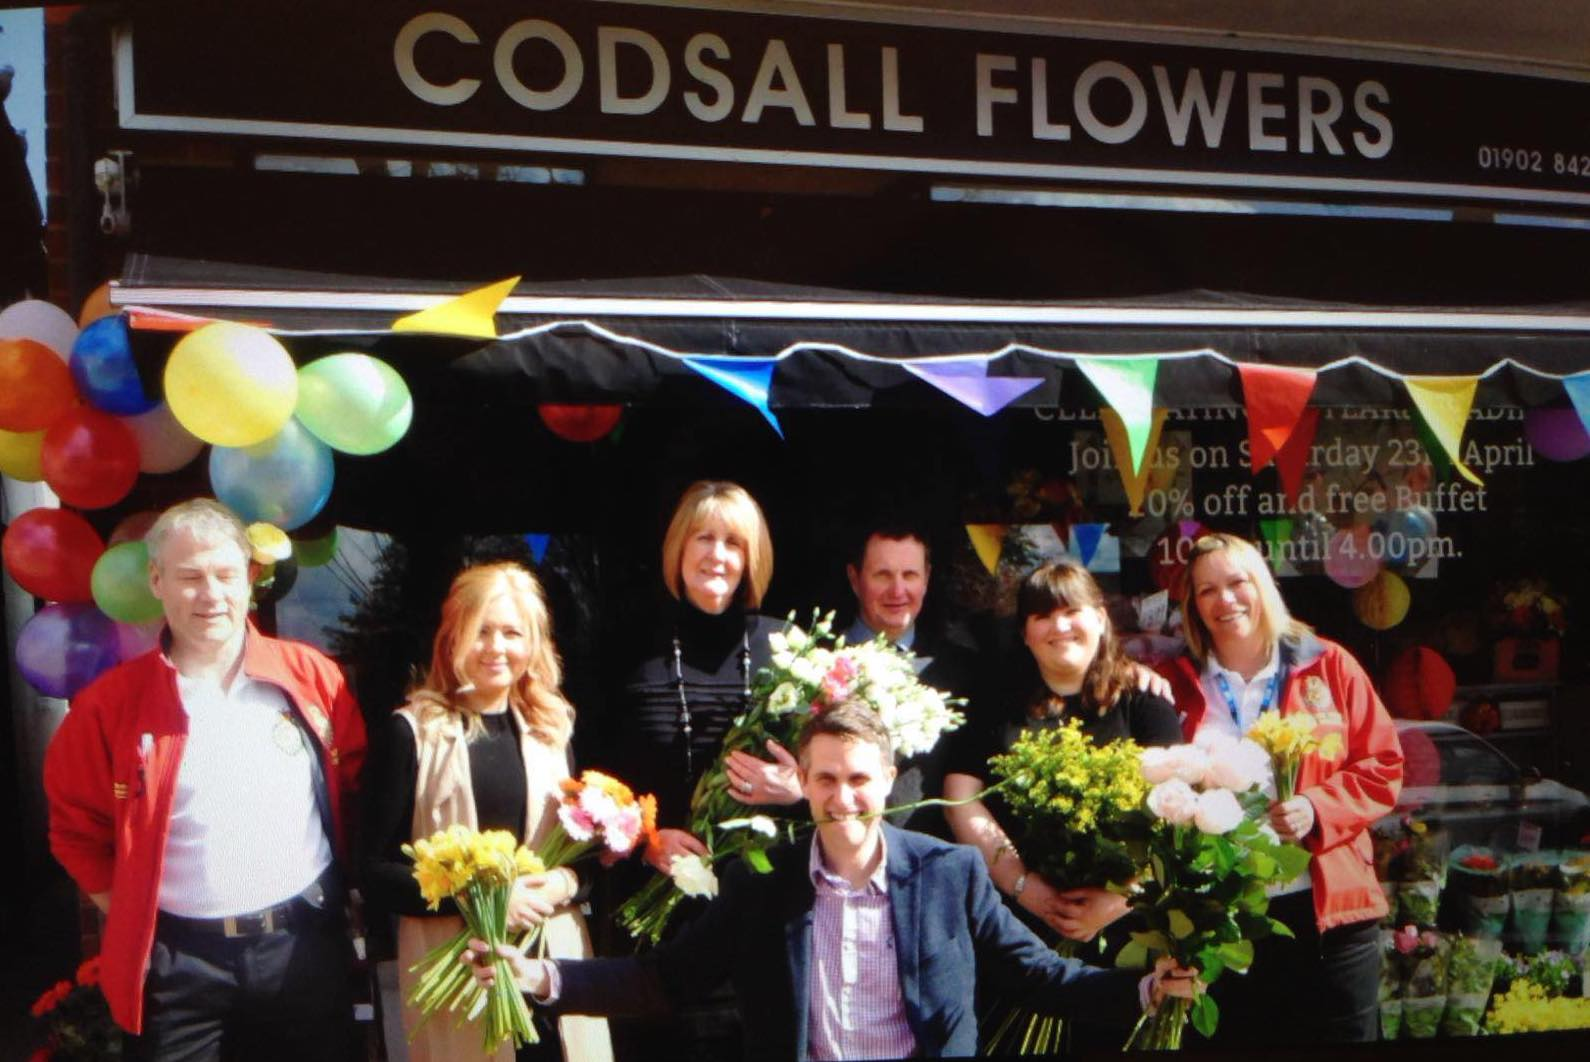 Florists Outside Codsall Flowers with MP Gavin Williamson